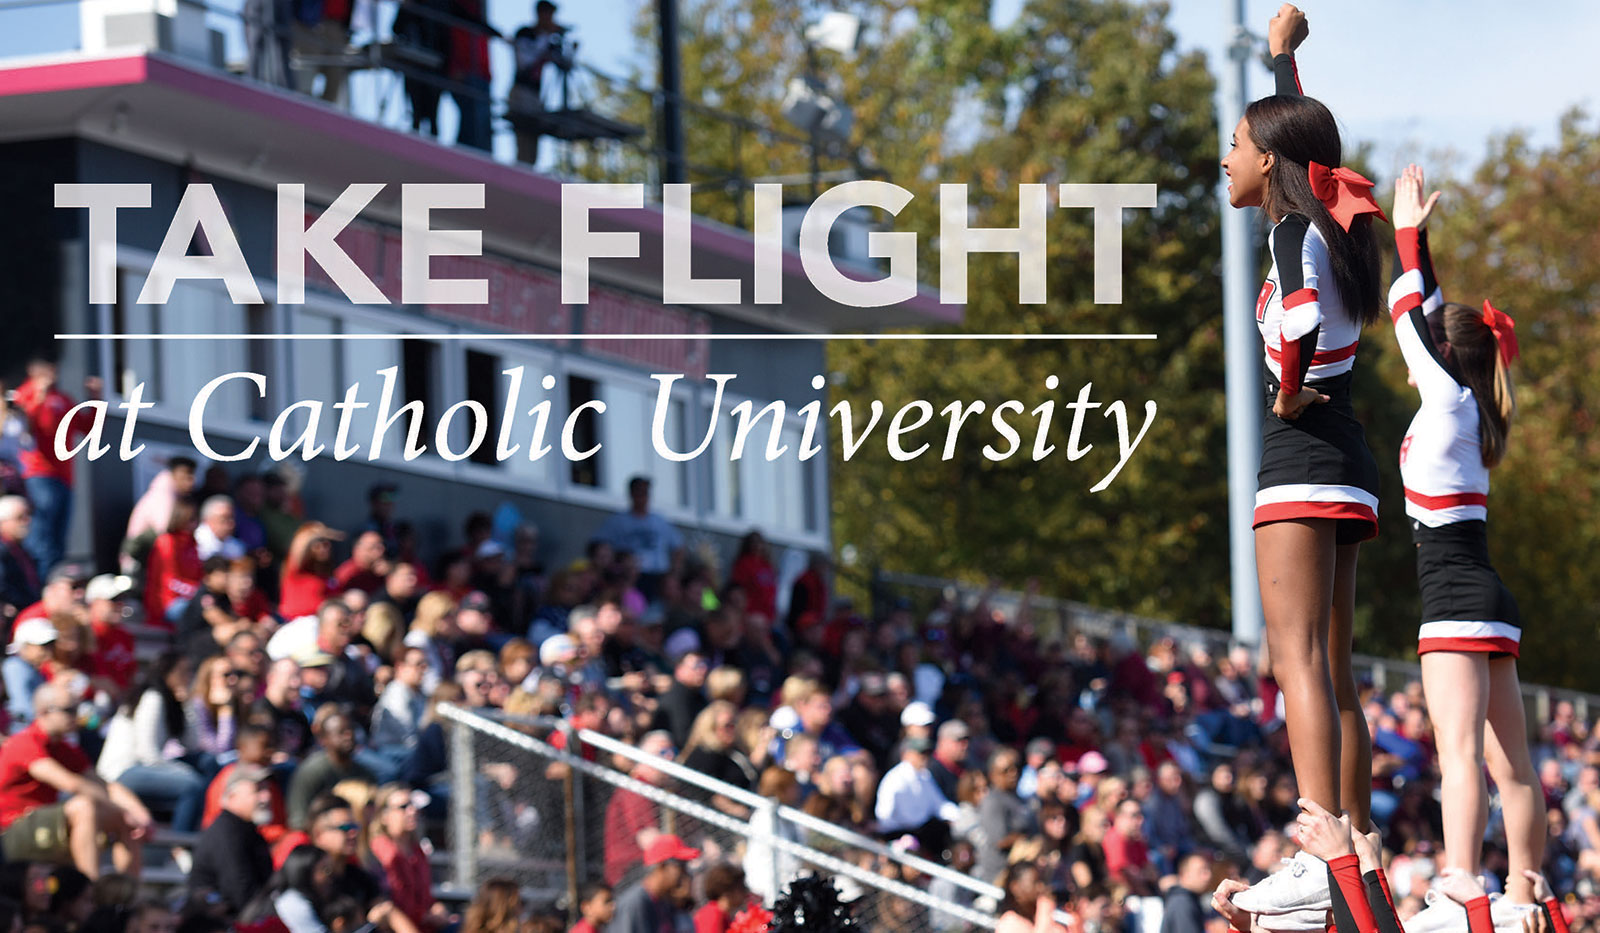 Cheerleaders leading crowd in cheer. Text on image reads Take Flight at Catholic University